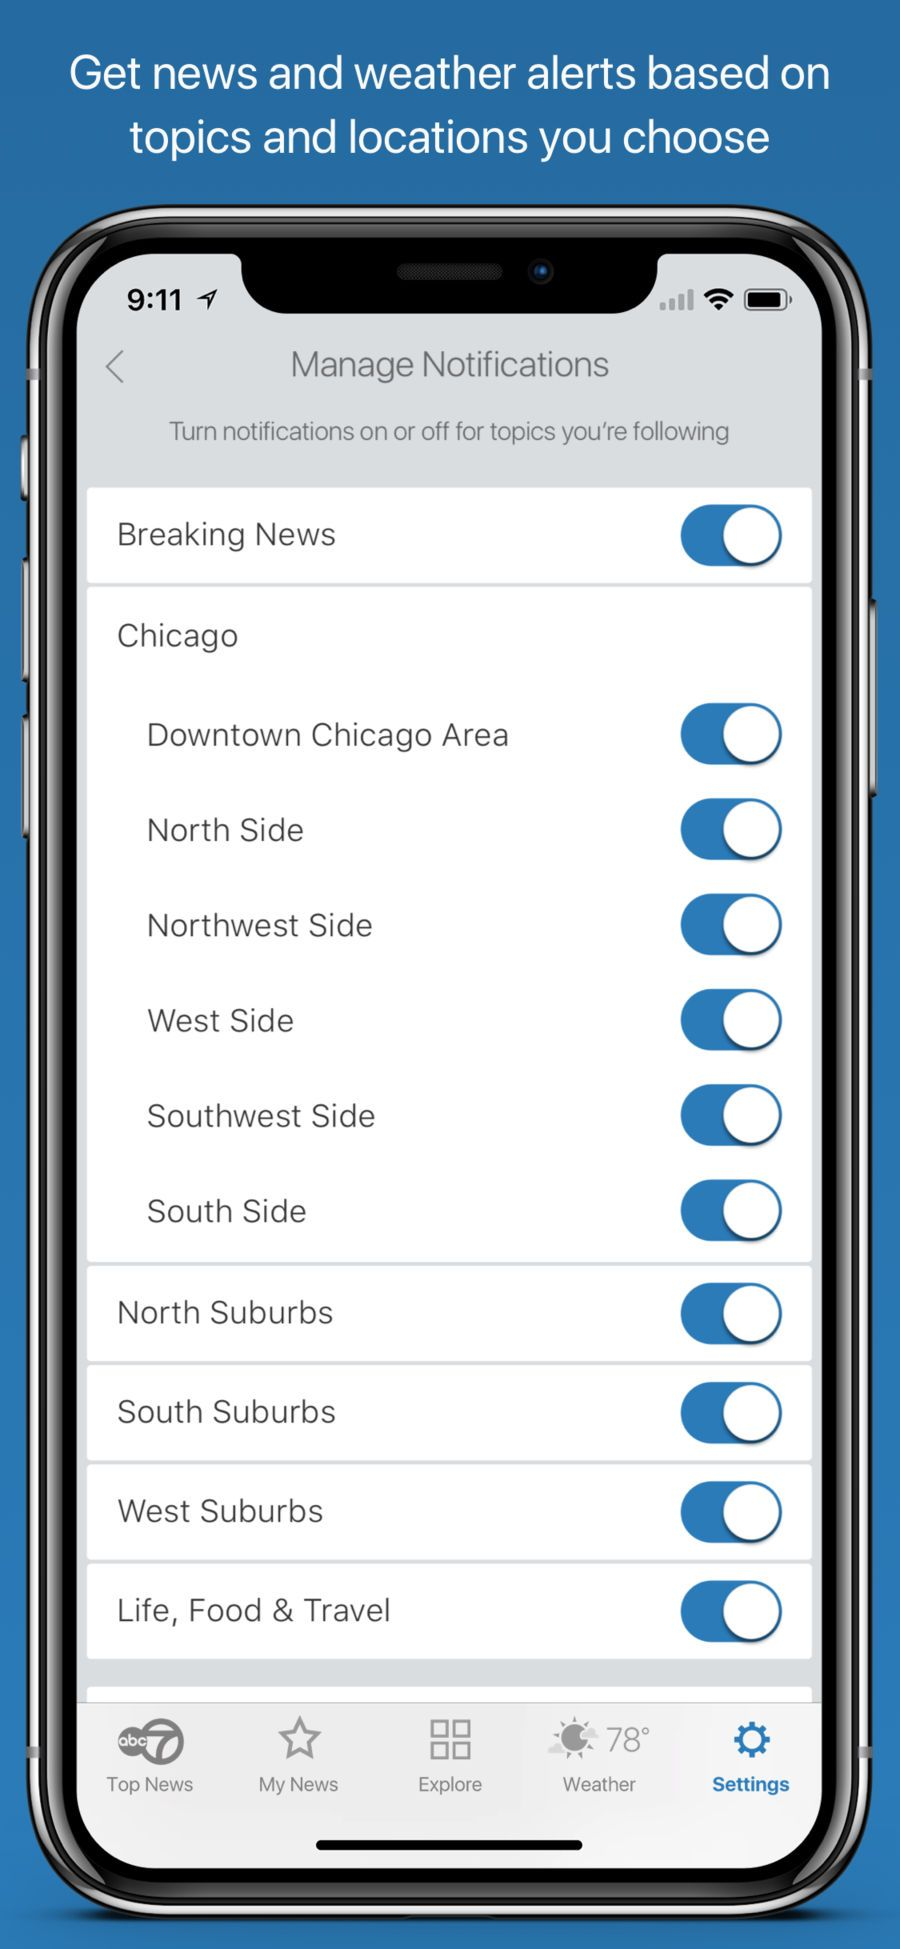 ABC7 Chicago News #Weather#Digital#apps#ios | iphone game